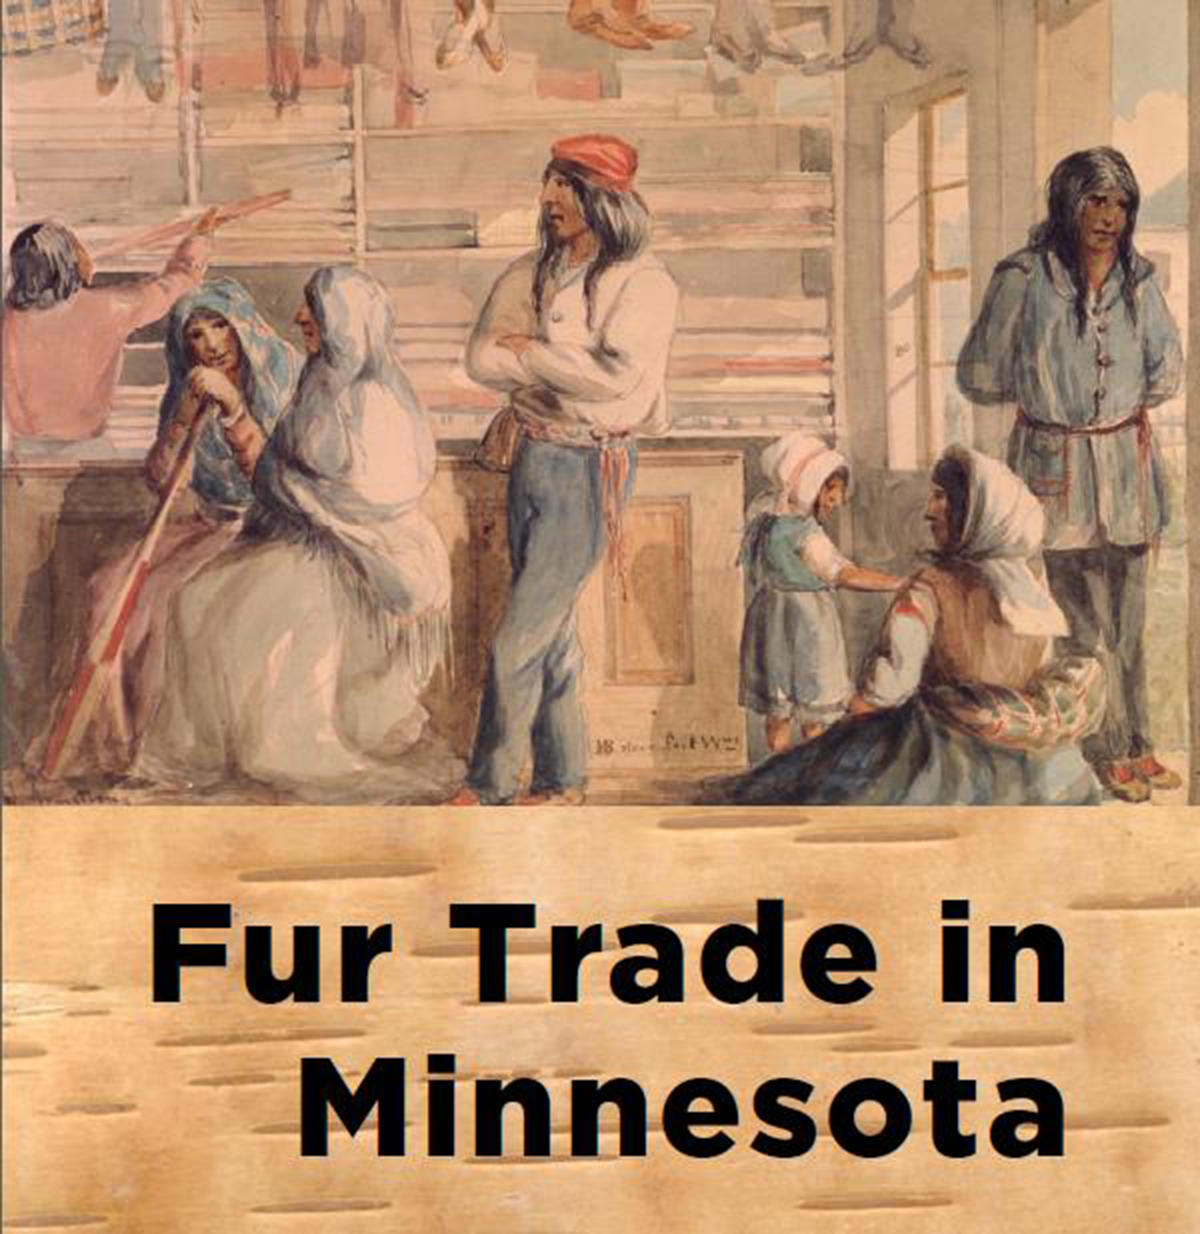 """The Minnesota Historical Society traveling exhibit, """"Fur Trade in Minnesota,"""" will be opening at the Becker County Museum on April 20 — and the museum is looking for historic photos and stories of local fur trappers and traders to display alongside the state exhibit. (Submitted photo)"""